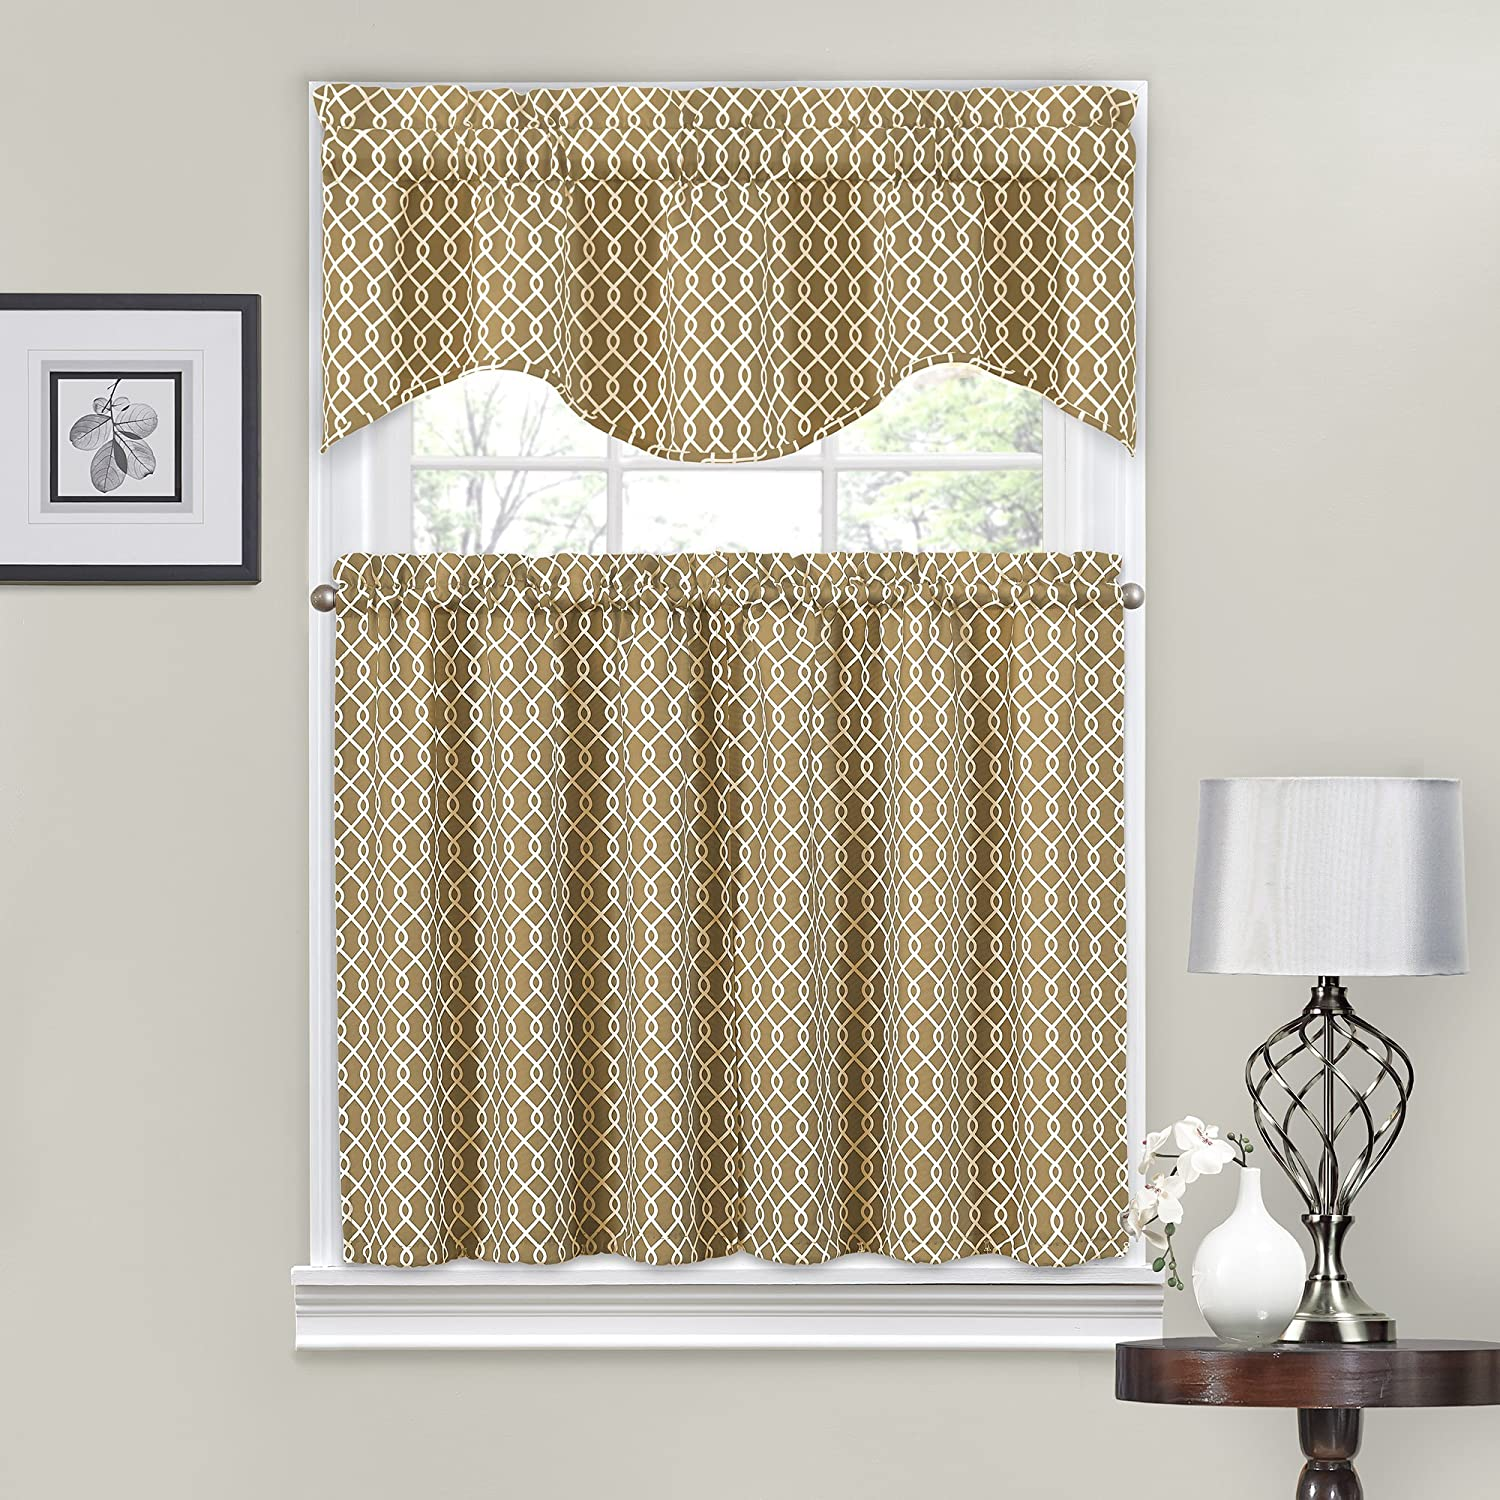 Ellis Window Curtains Sale Ease Bedding With Style